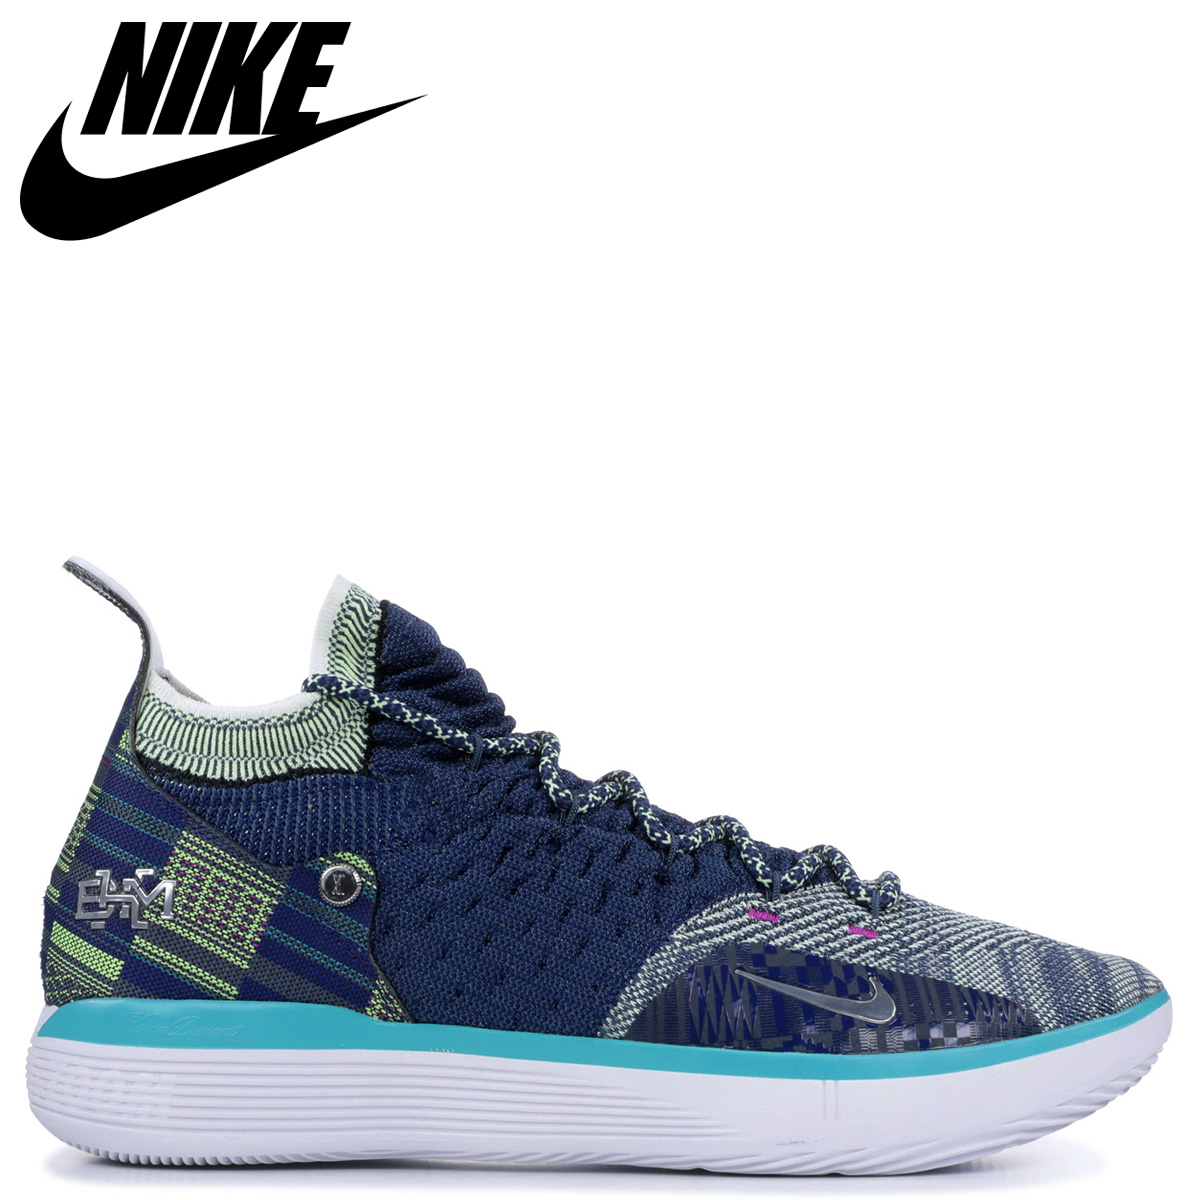 marco Persona a cargo futuro  buy > nike kd 11 bhm, Up to 78% OFF